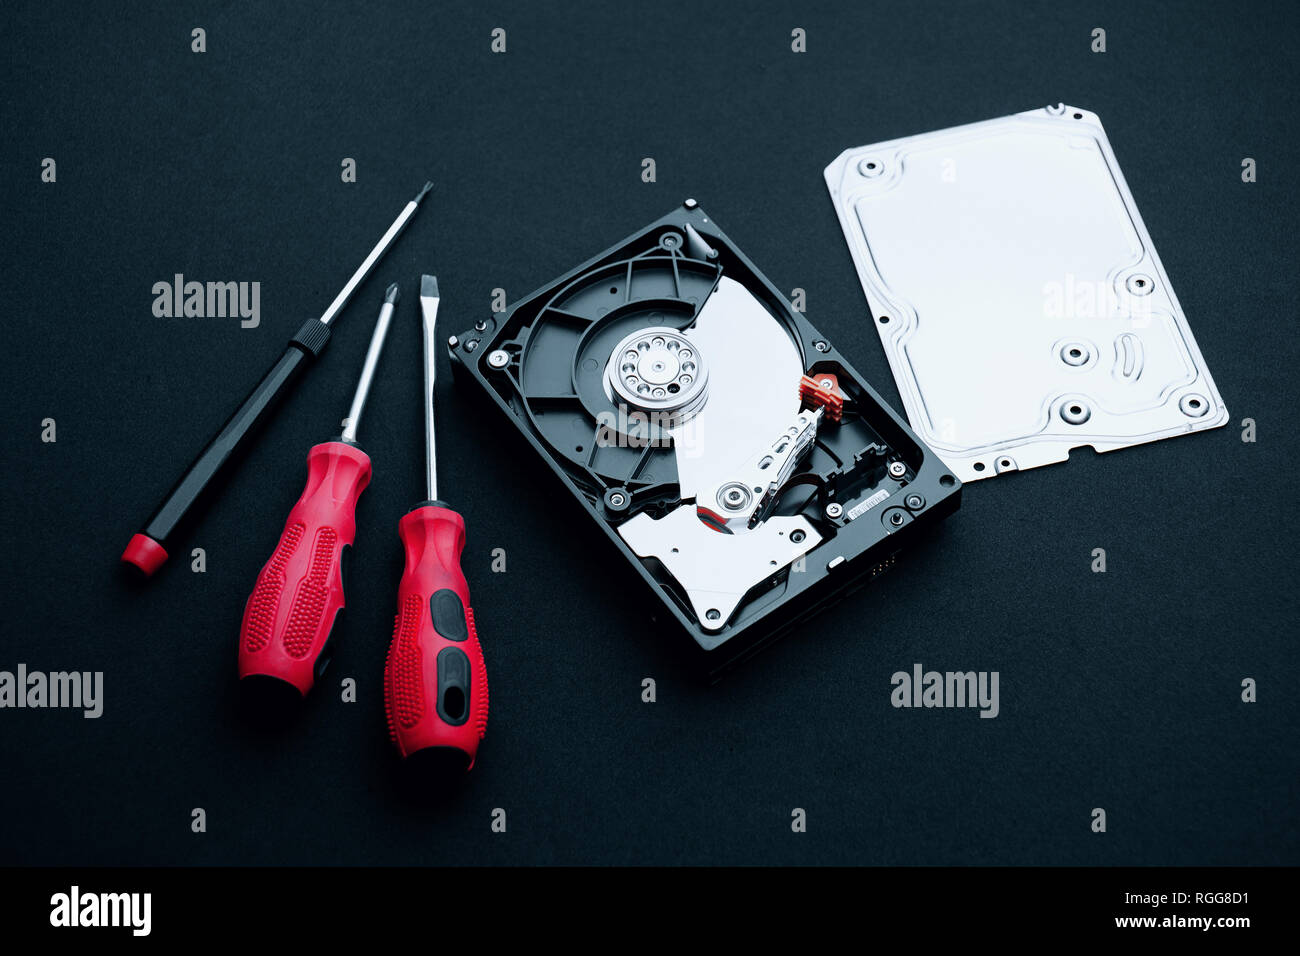 Data storage hard disk drive uncovered with assembly case cover part and screwdrivers, Computer hardware repair concepts. - Stock Image